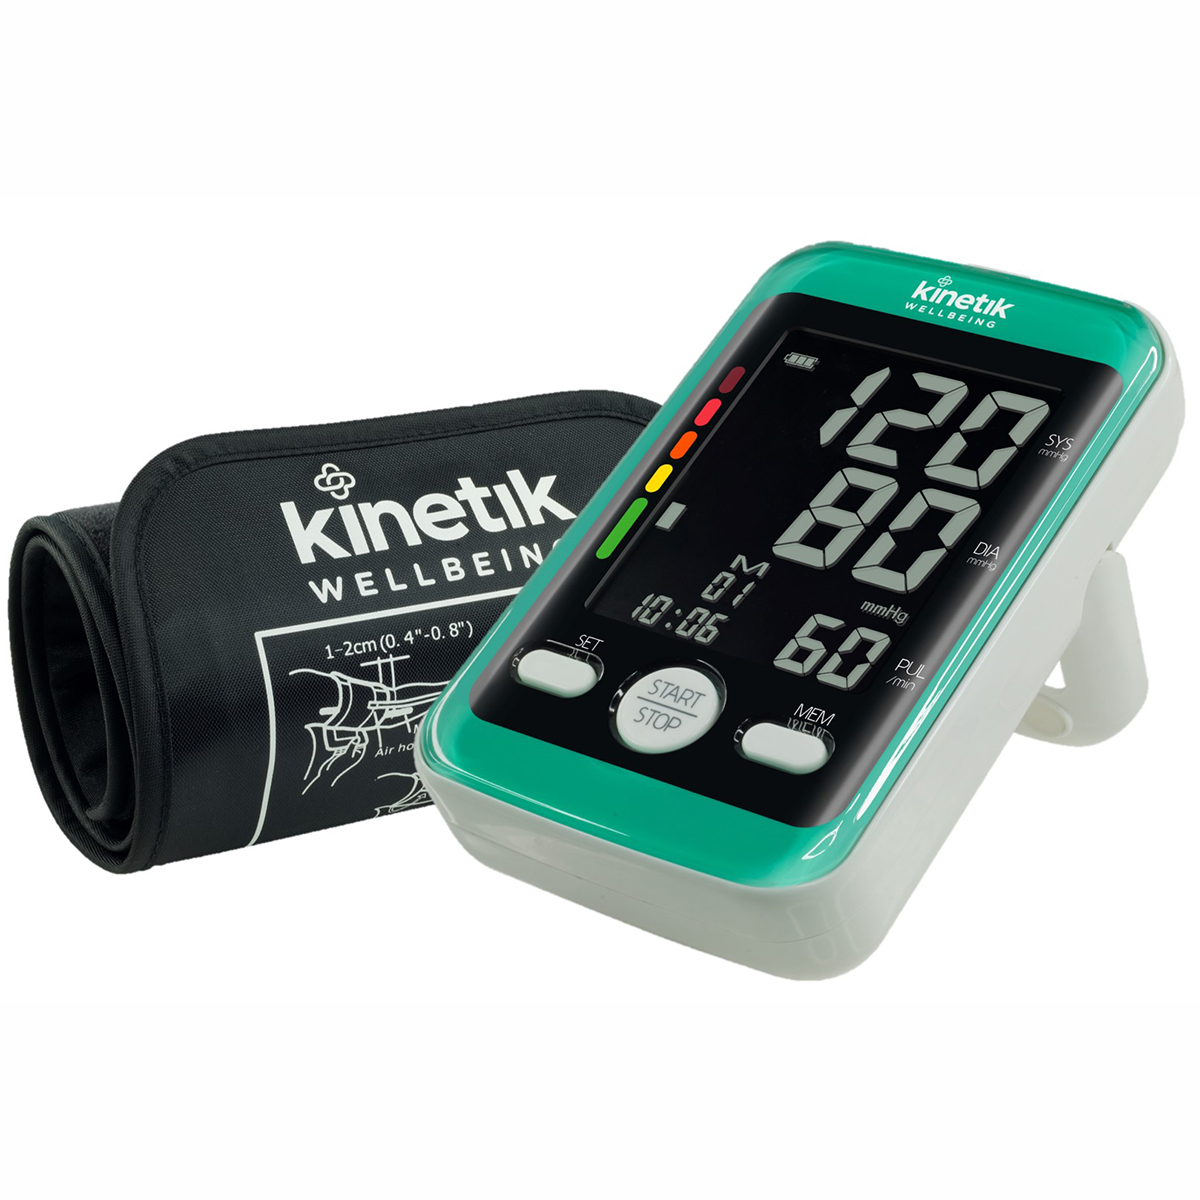 Kinetic Wellbeing Advanced Blood Pressure Monitor X2 Comfort